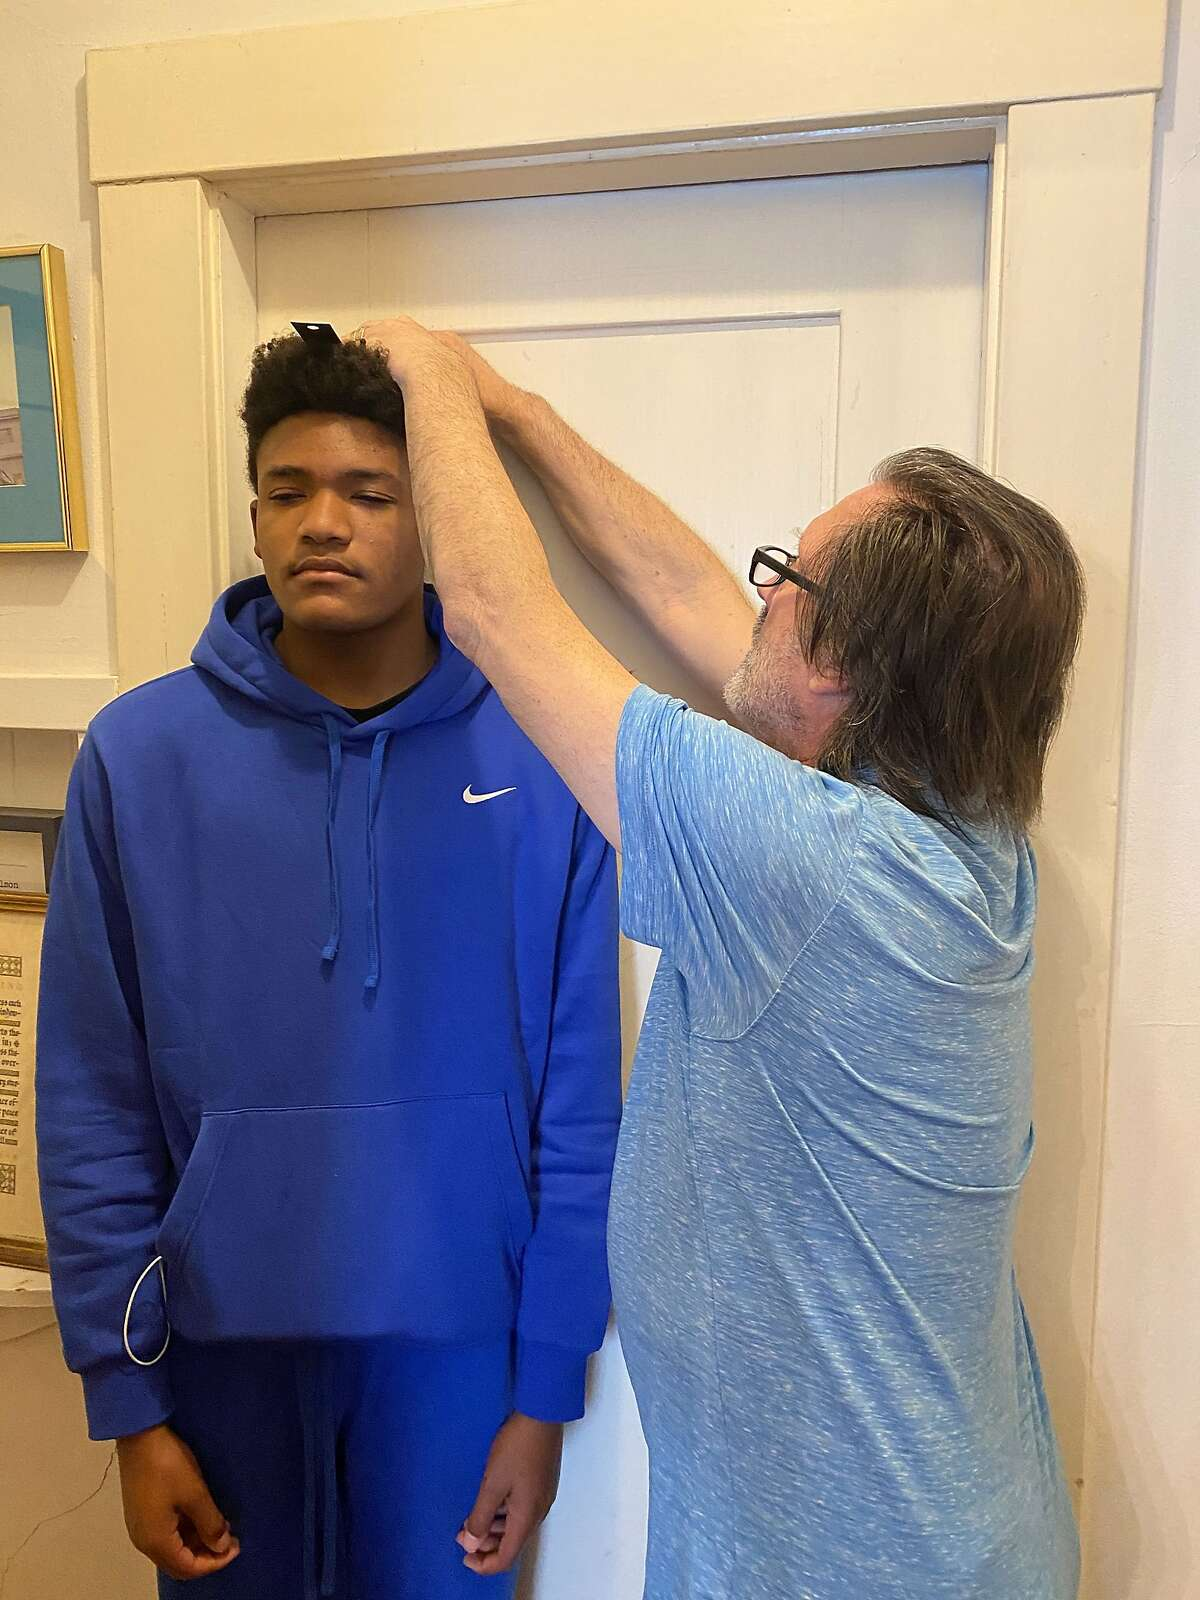 Zane Fisher-Paulson gets his height measured by his father, Brian, during the family's annual Talling of the Boys.